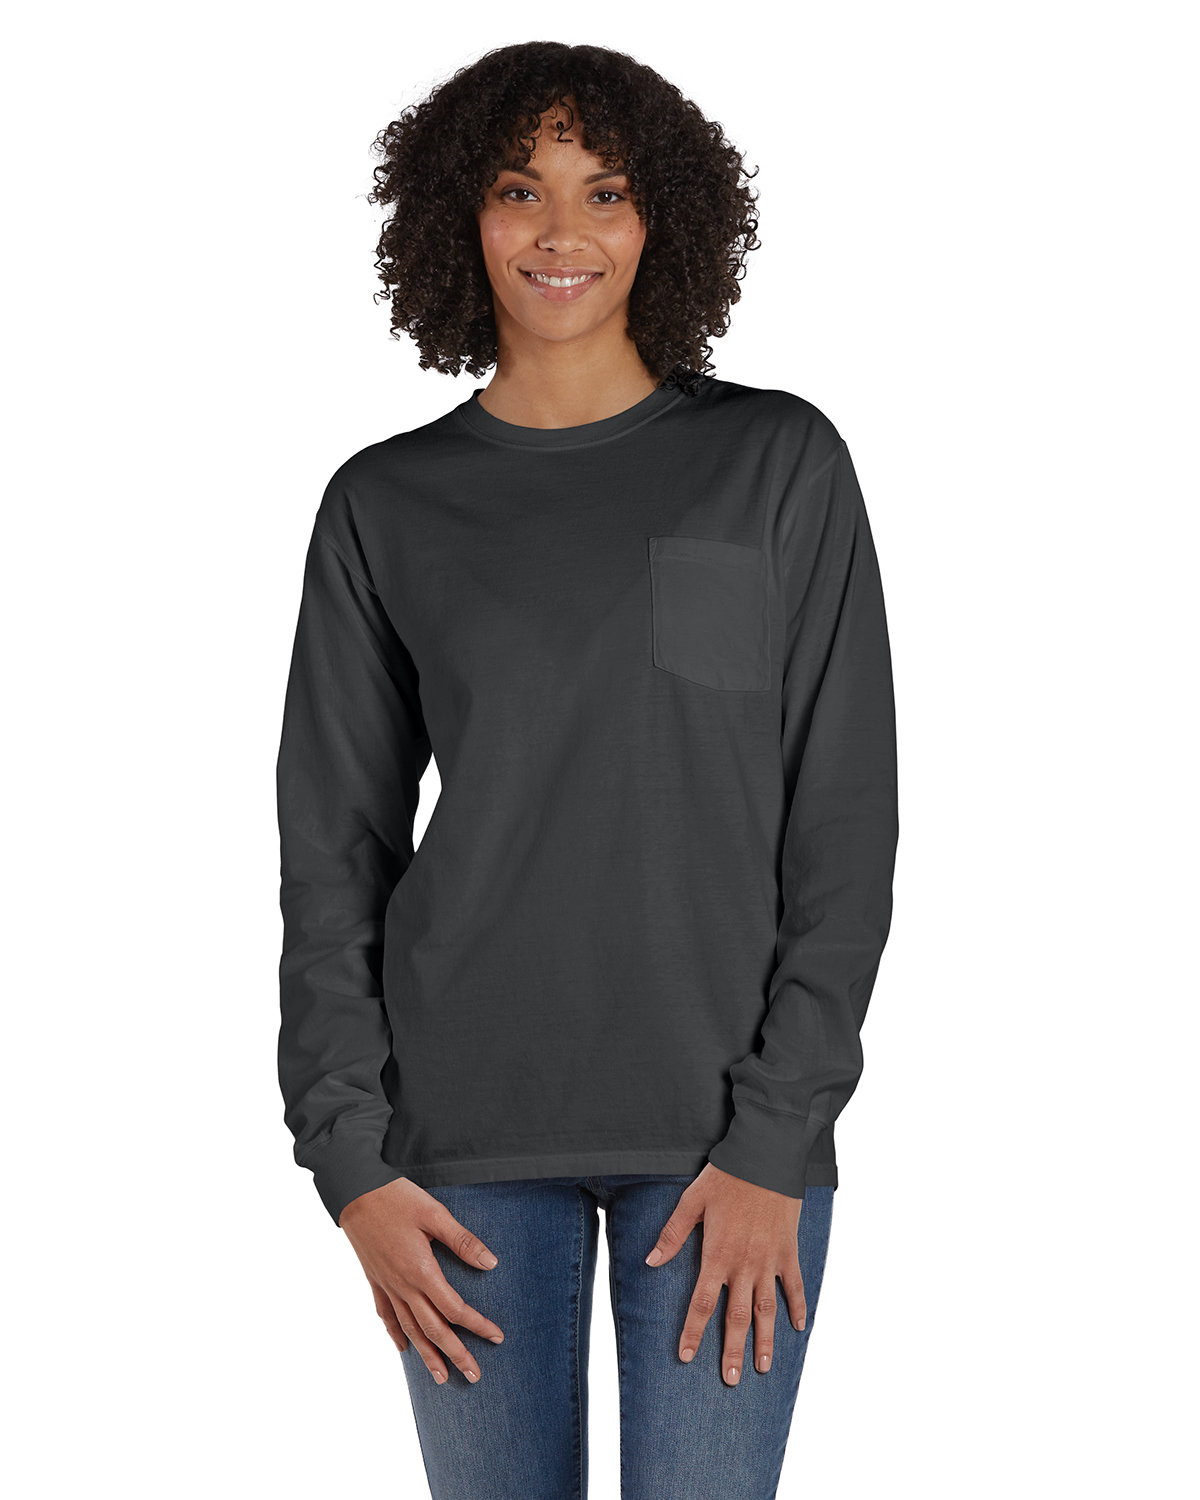 ComfortWash by Hanes Unisex Garment-Dyed Long-Sleeve T-Shirt with Pocket NEW RAILROAD